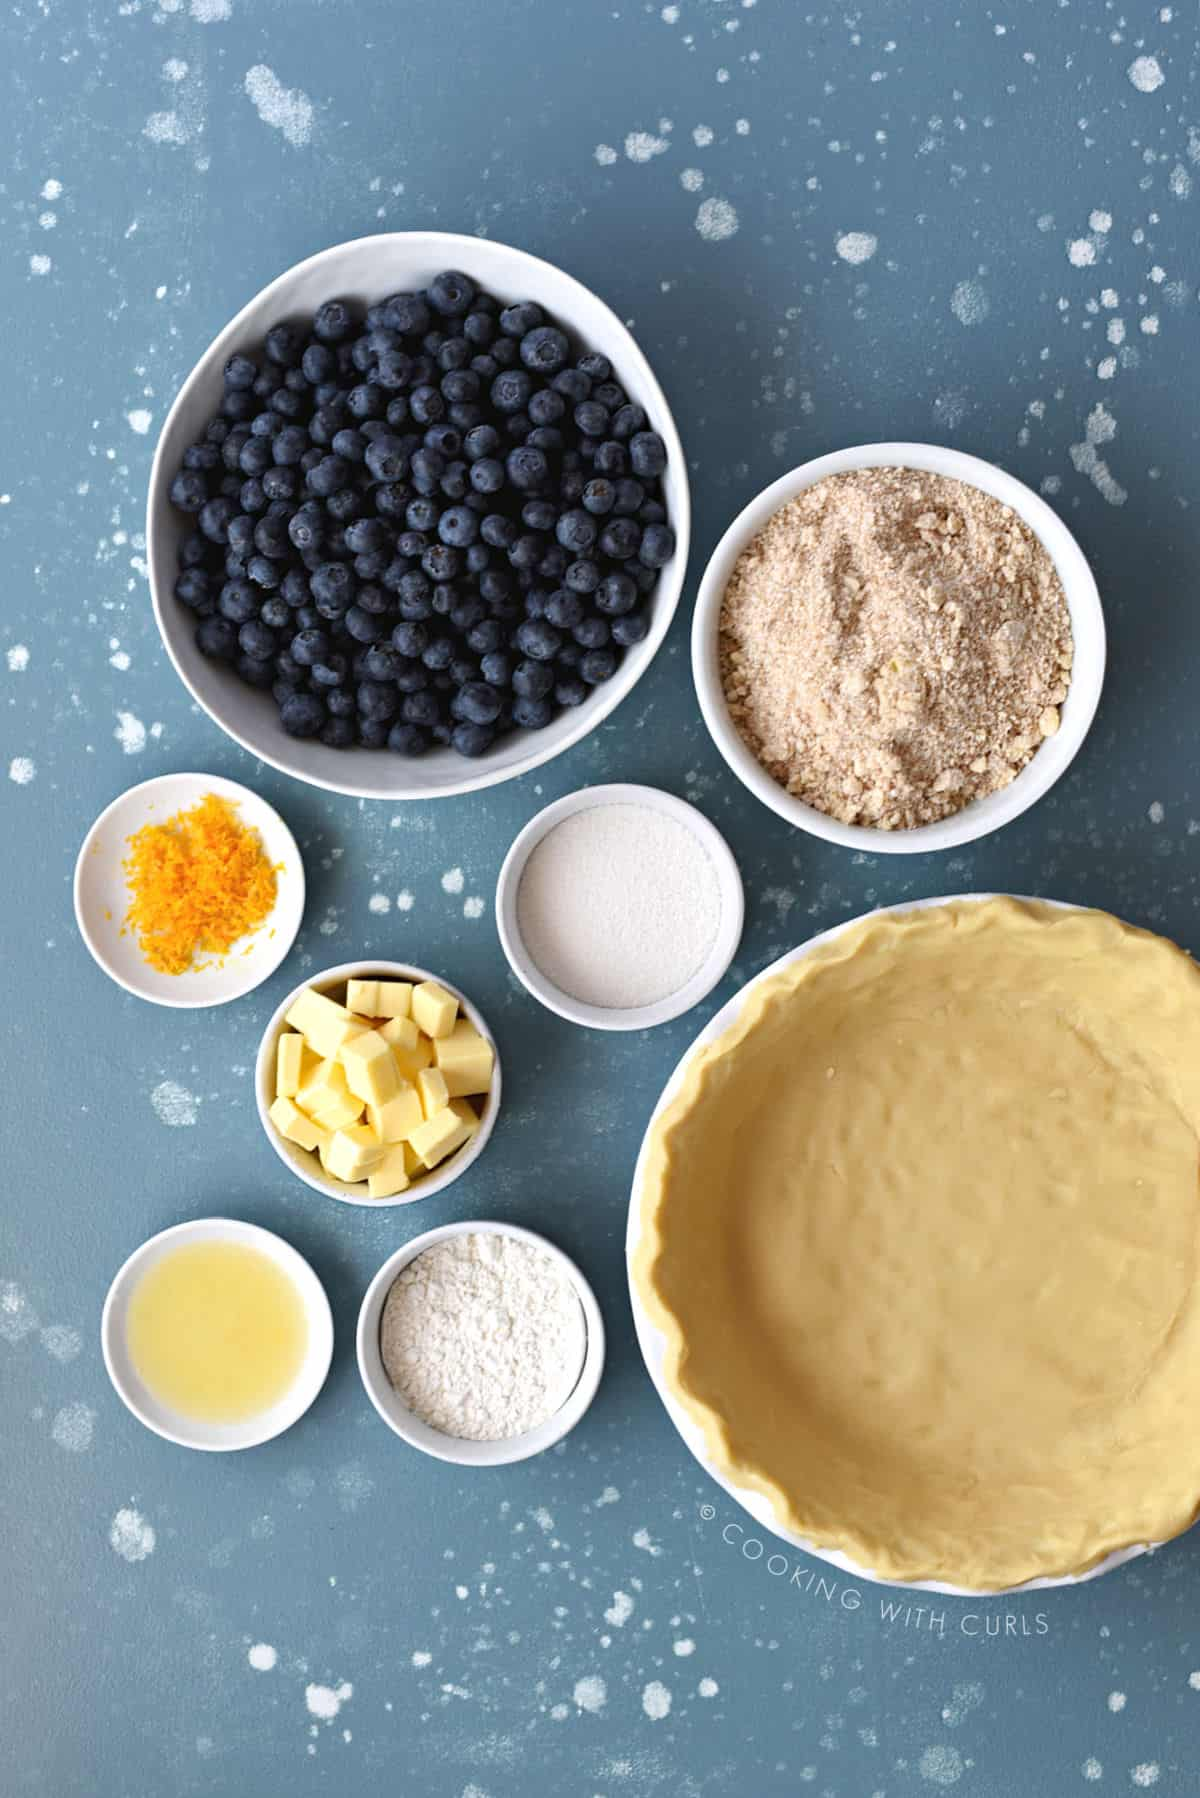 a large white bowl filled with fresh blueberries, a bowl with crumb topping, small bowls with orange zest, sugar, flour, orange juice and a pie crust in a white pie pan.